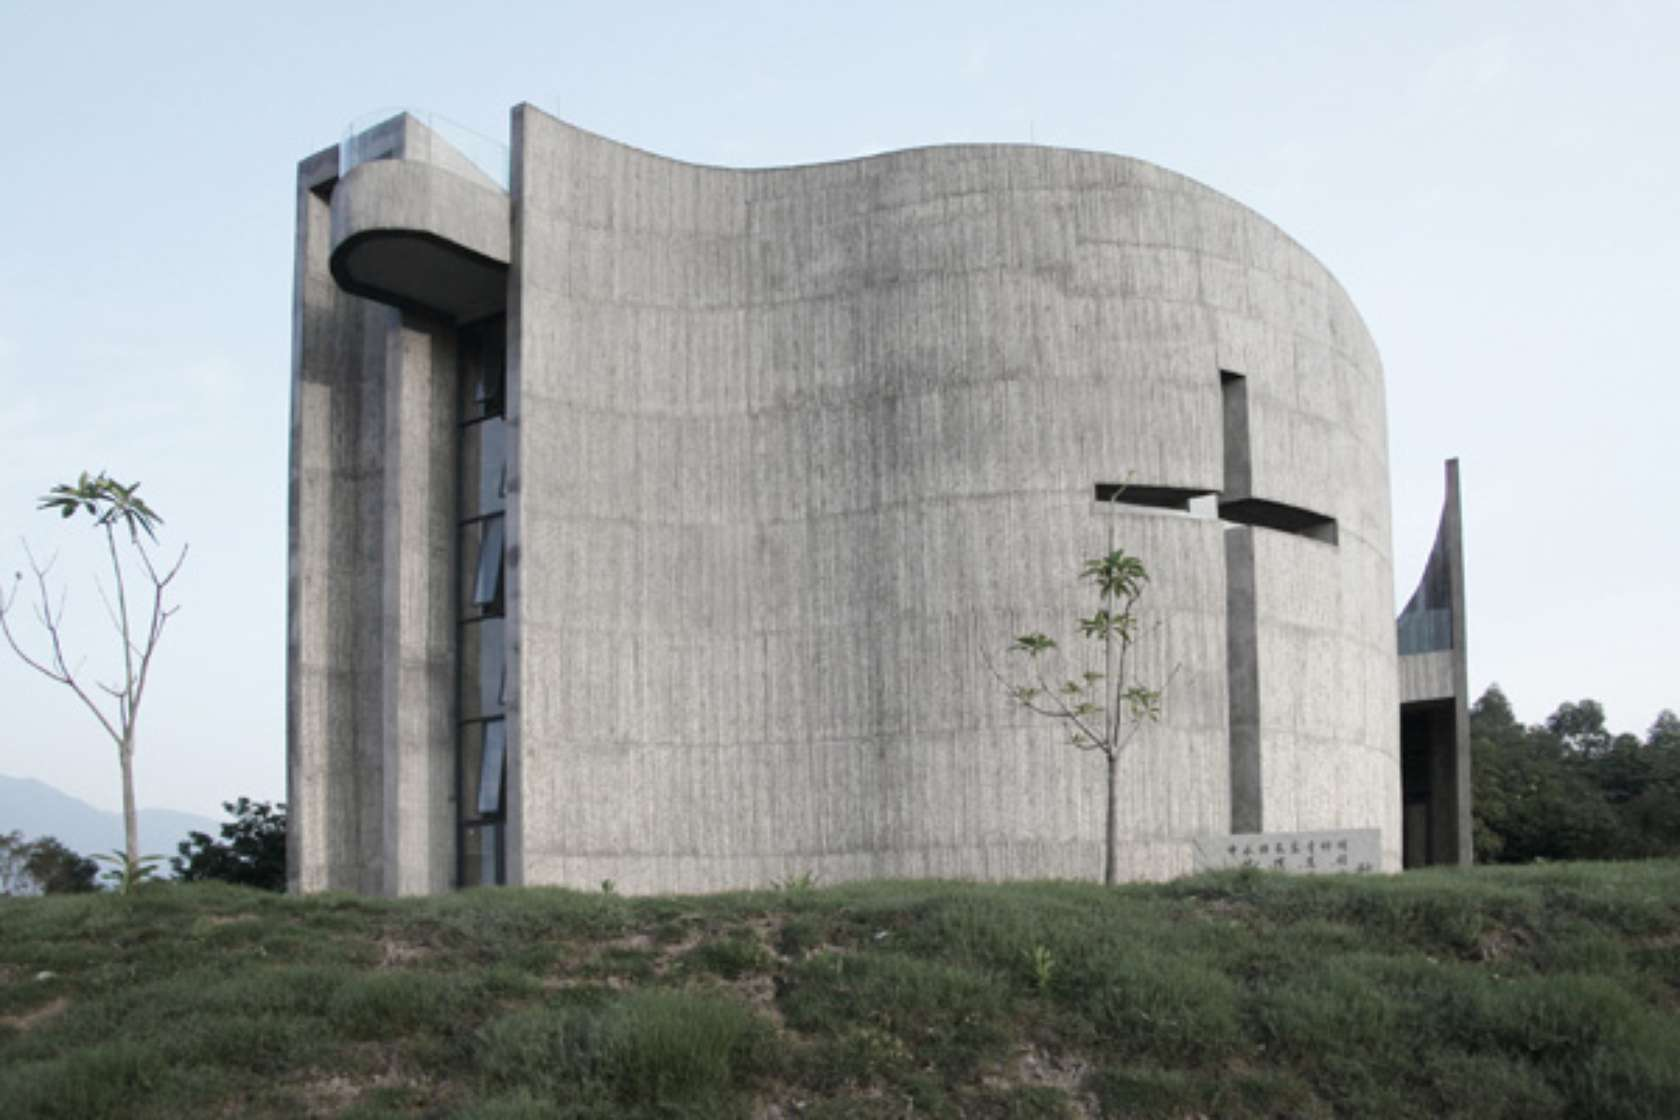 Architizer architects buildings and building products - 7 Concrete Churches Resurrecting Brutalist Architecture